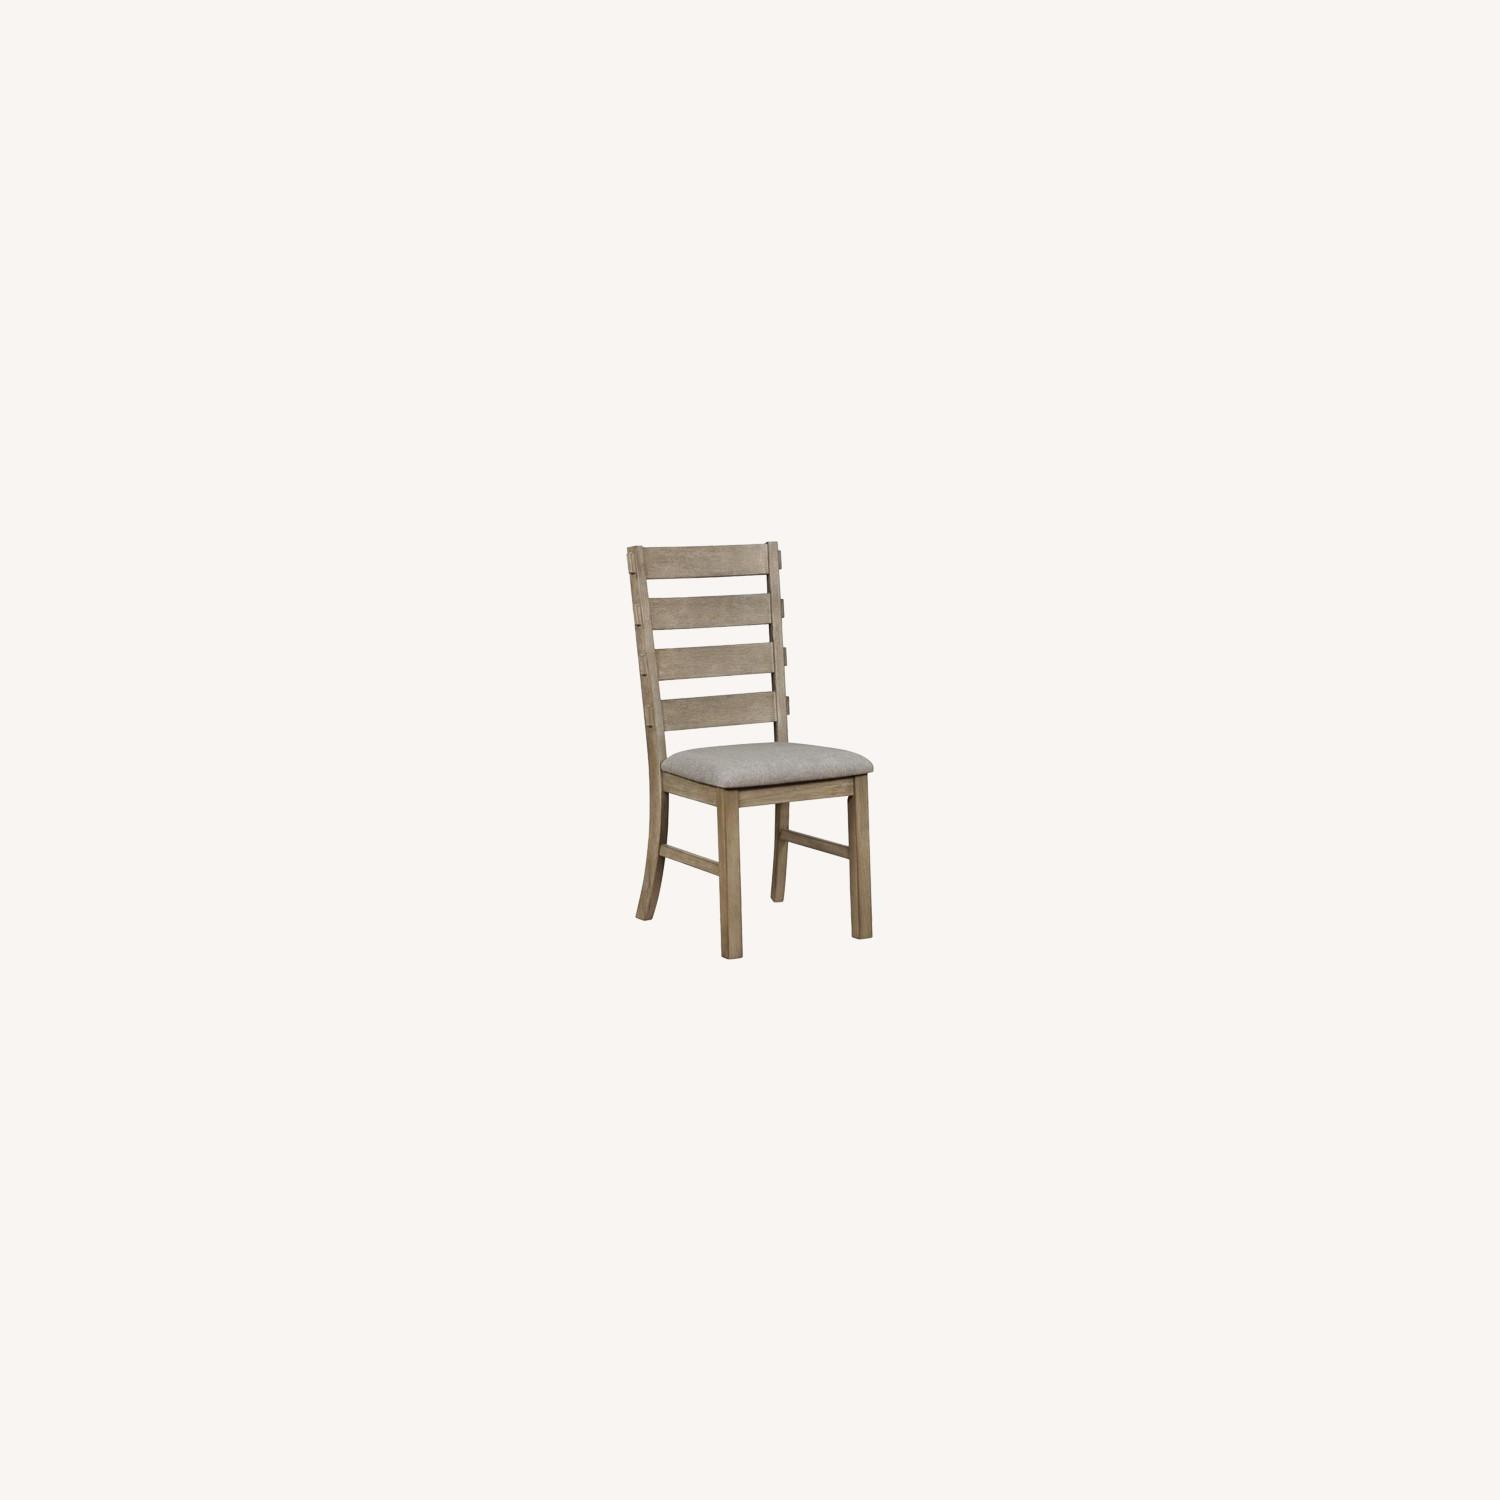 Rustic Dining Chair In Vineyard Oak Finish - image-6